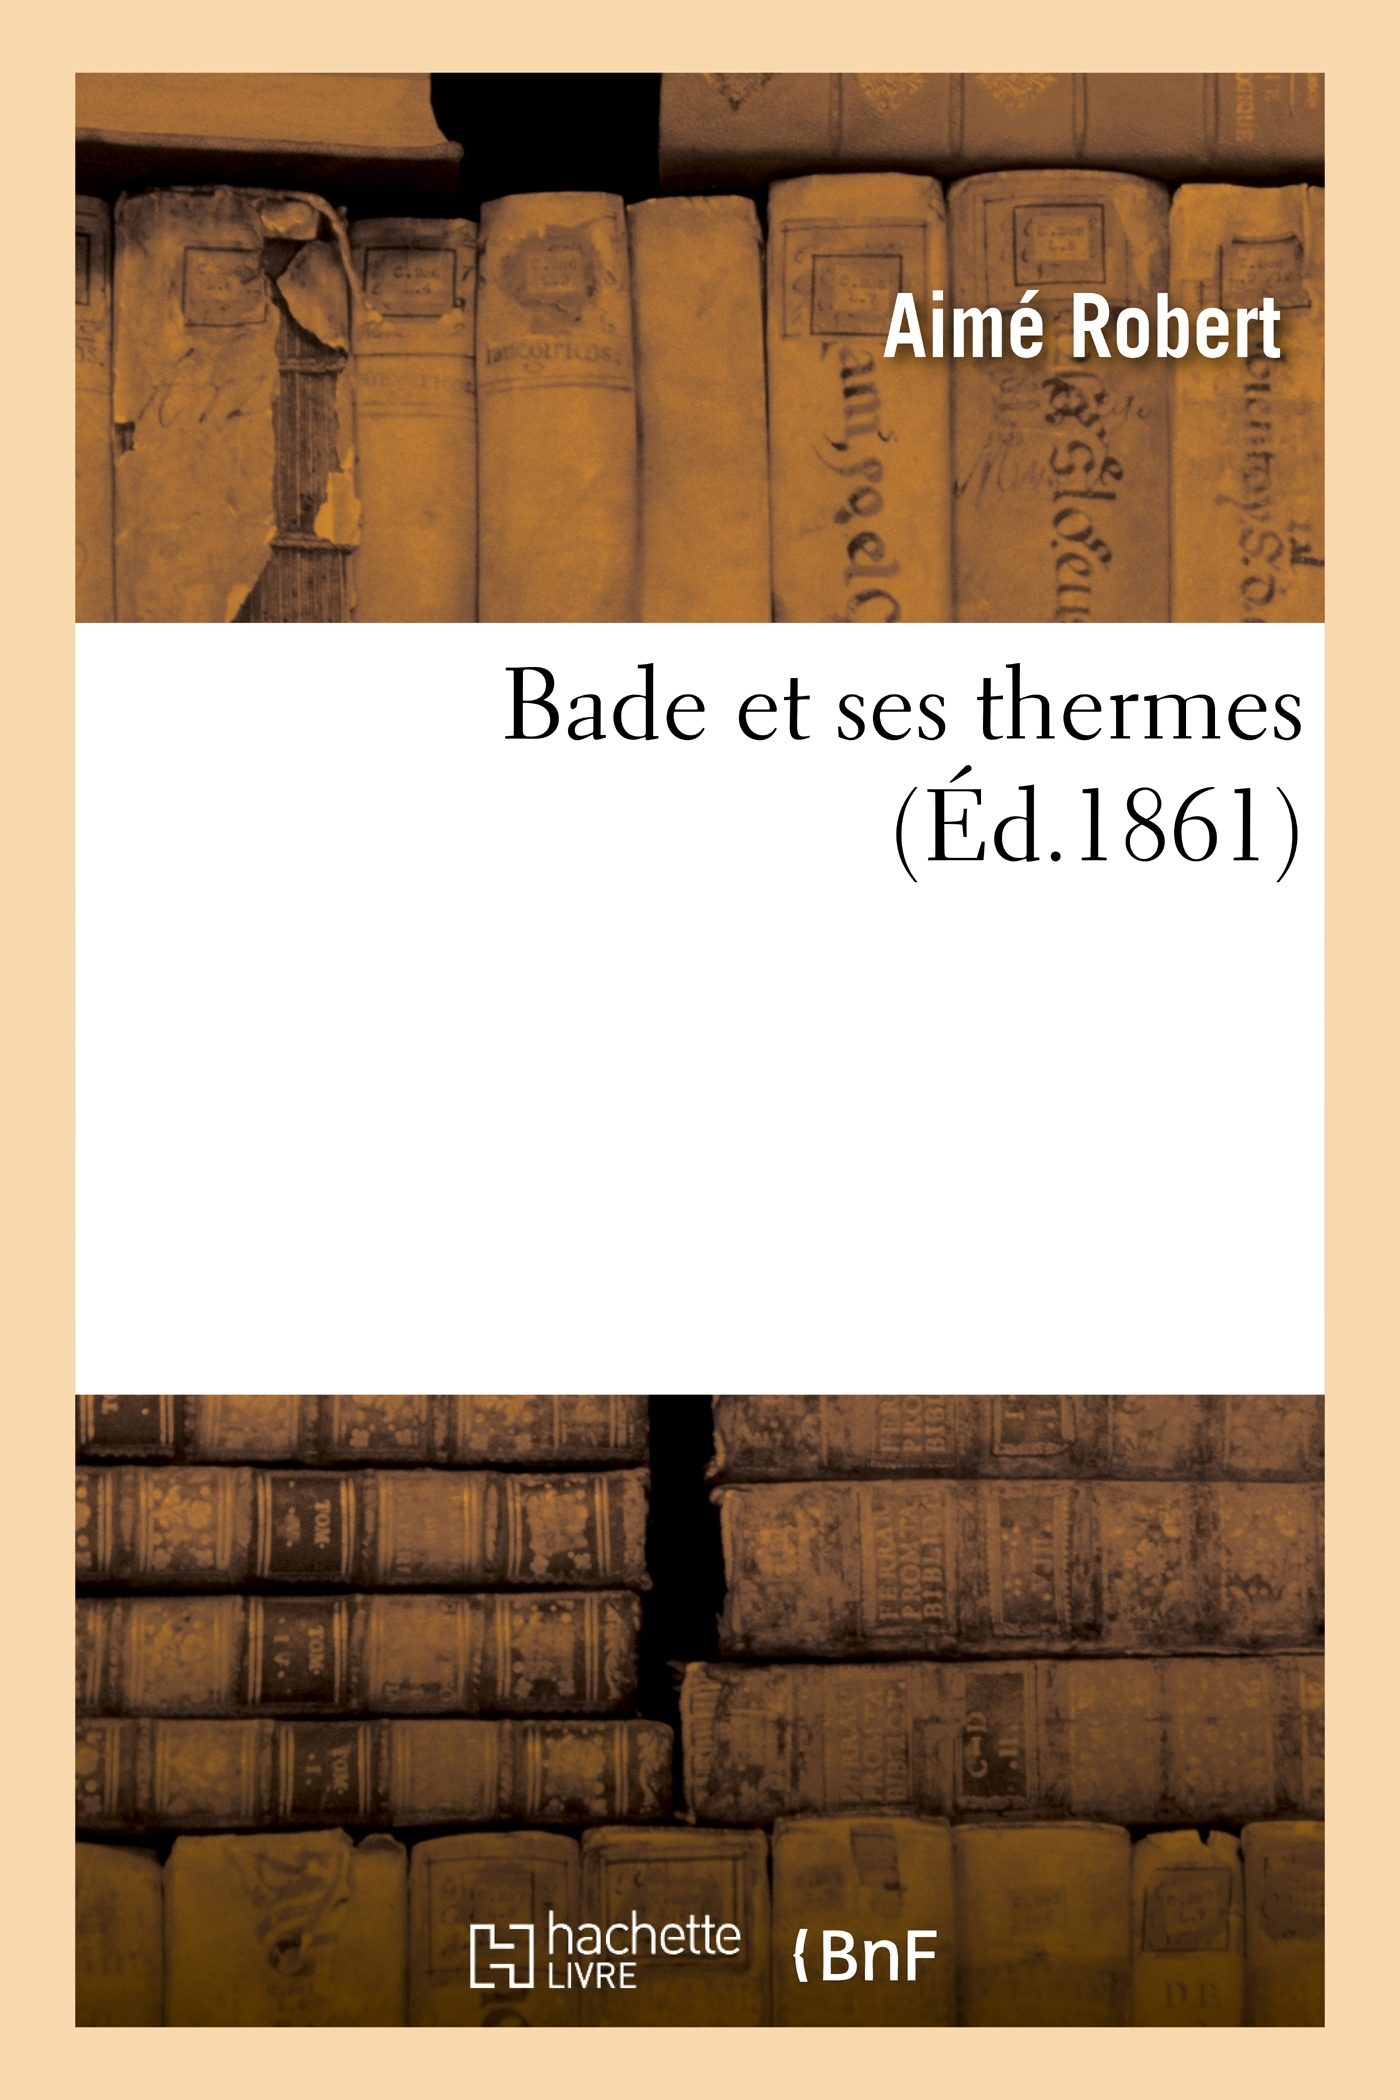 BADE ET SES THERMES